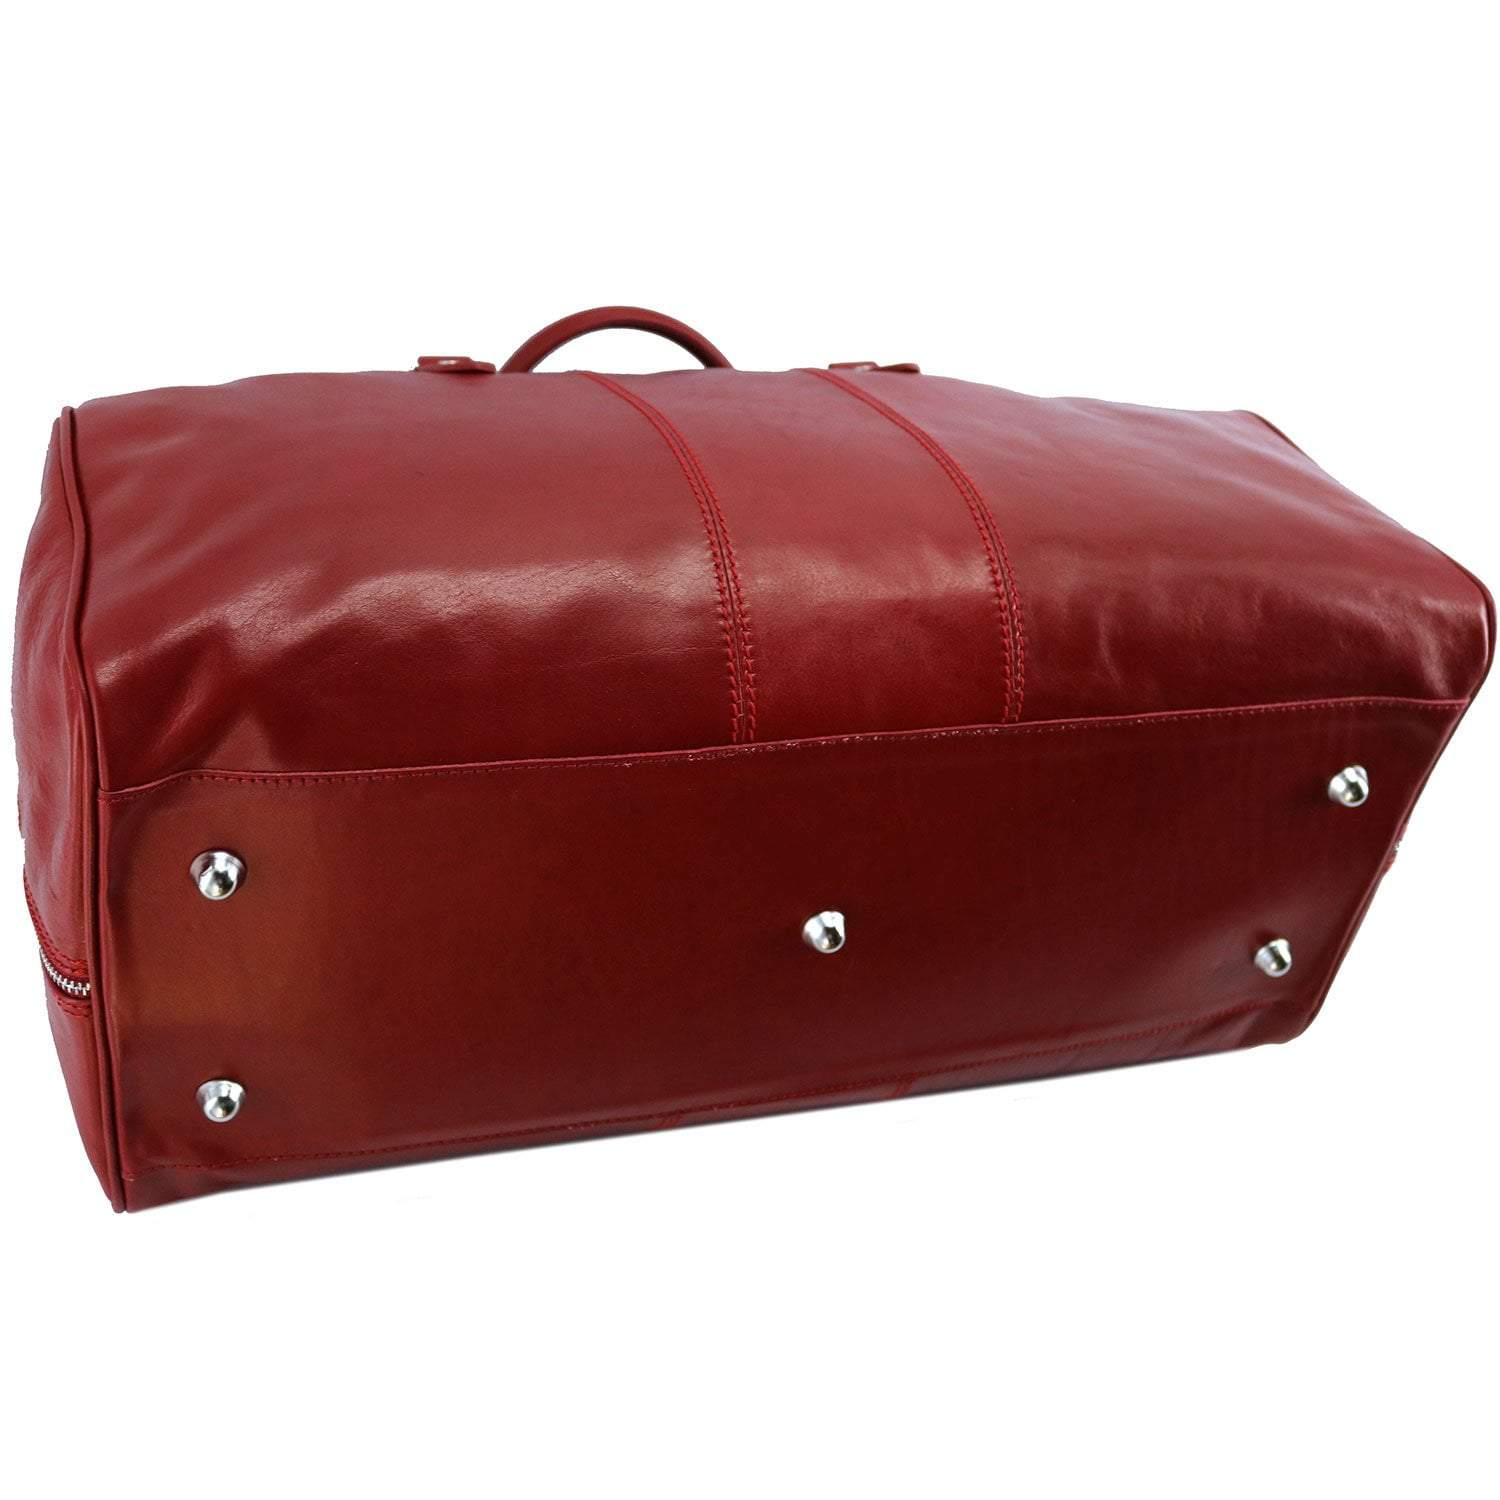 Floto Venezia Leather Travel Duffle Bag 2.0 - Tuscan Red Bottom Feet Protection